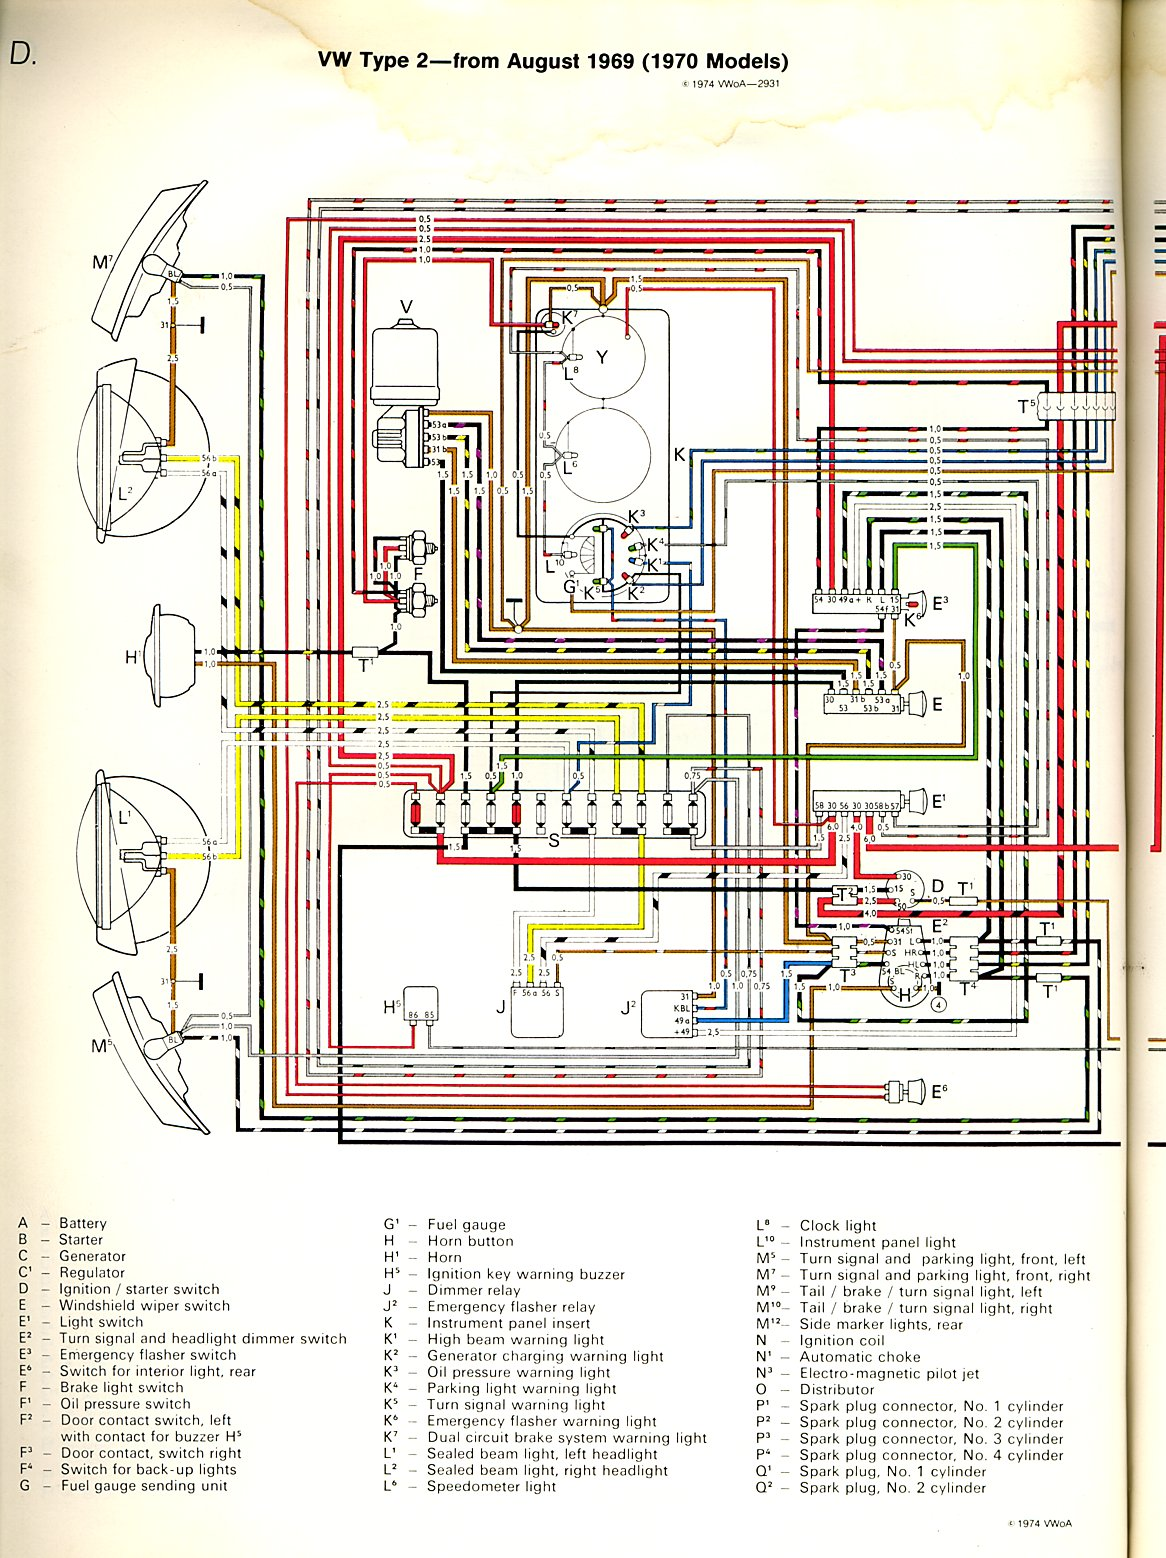 Type 2 Wiring Diagrams 1970 Mercedes Benz Fuse Box